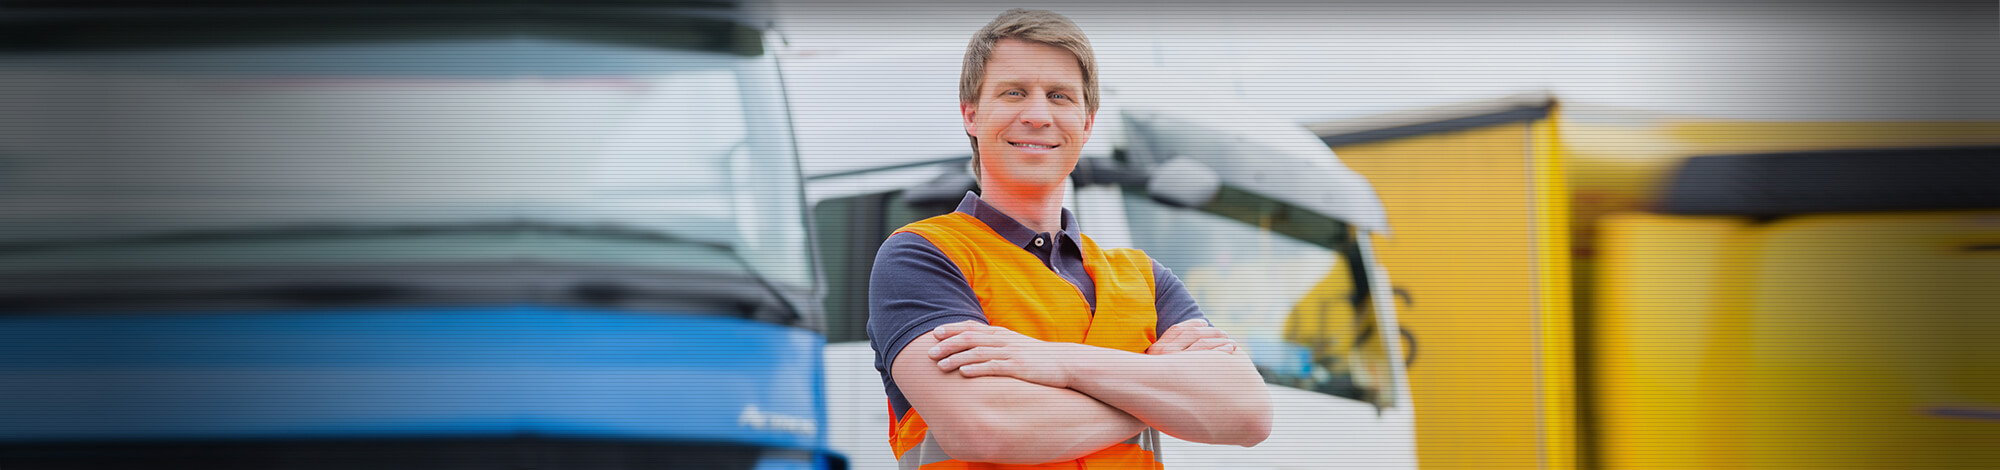 image of hgv driver worker